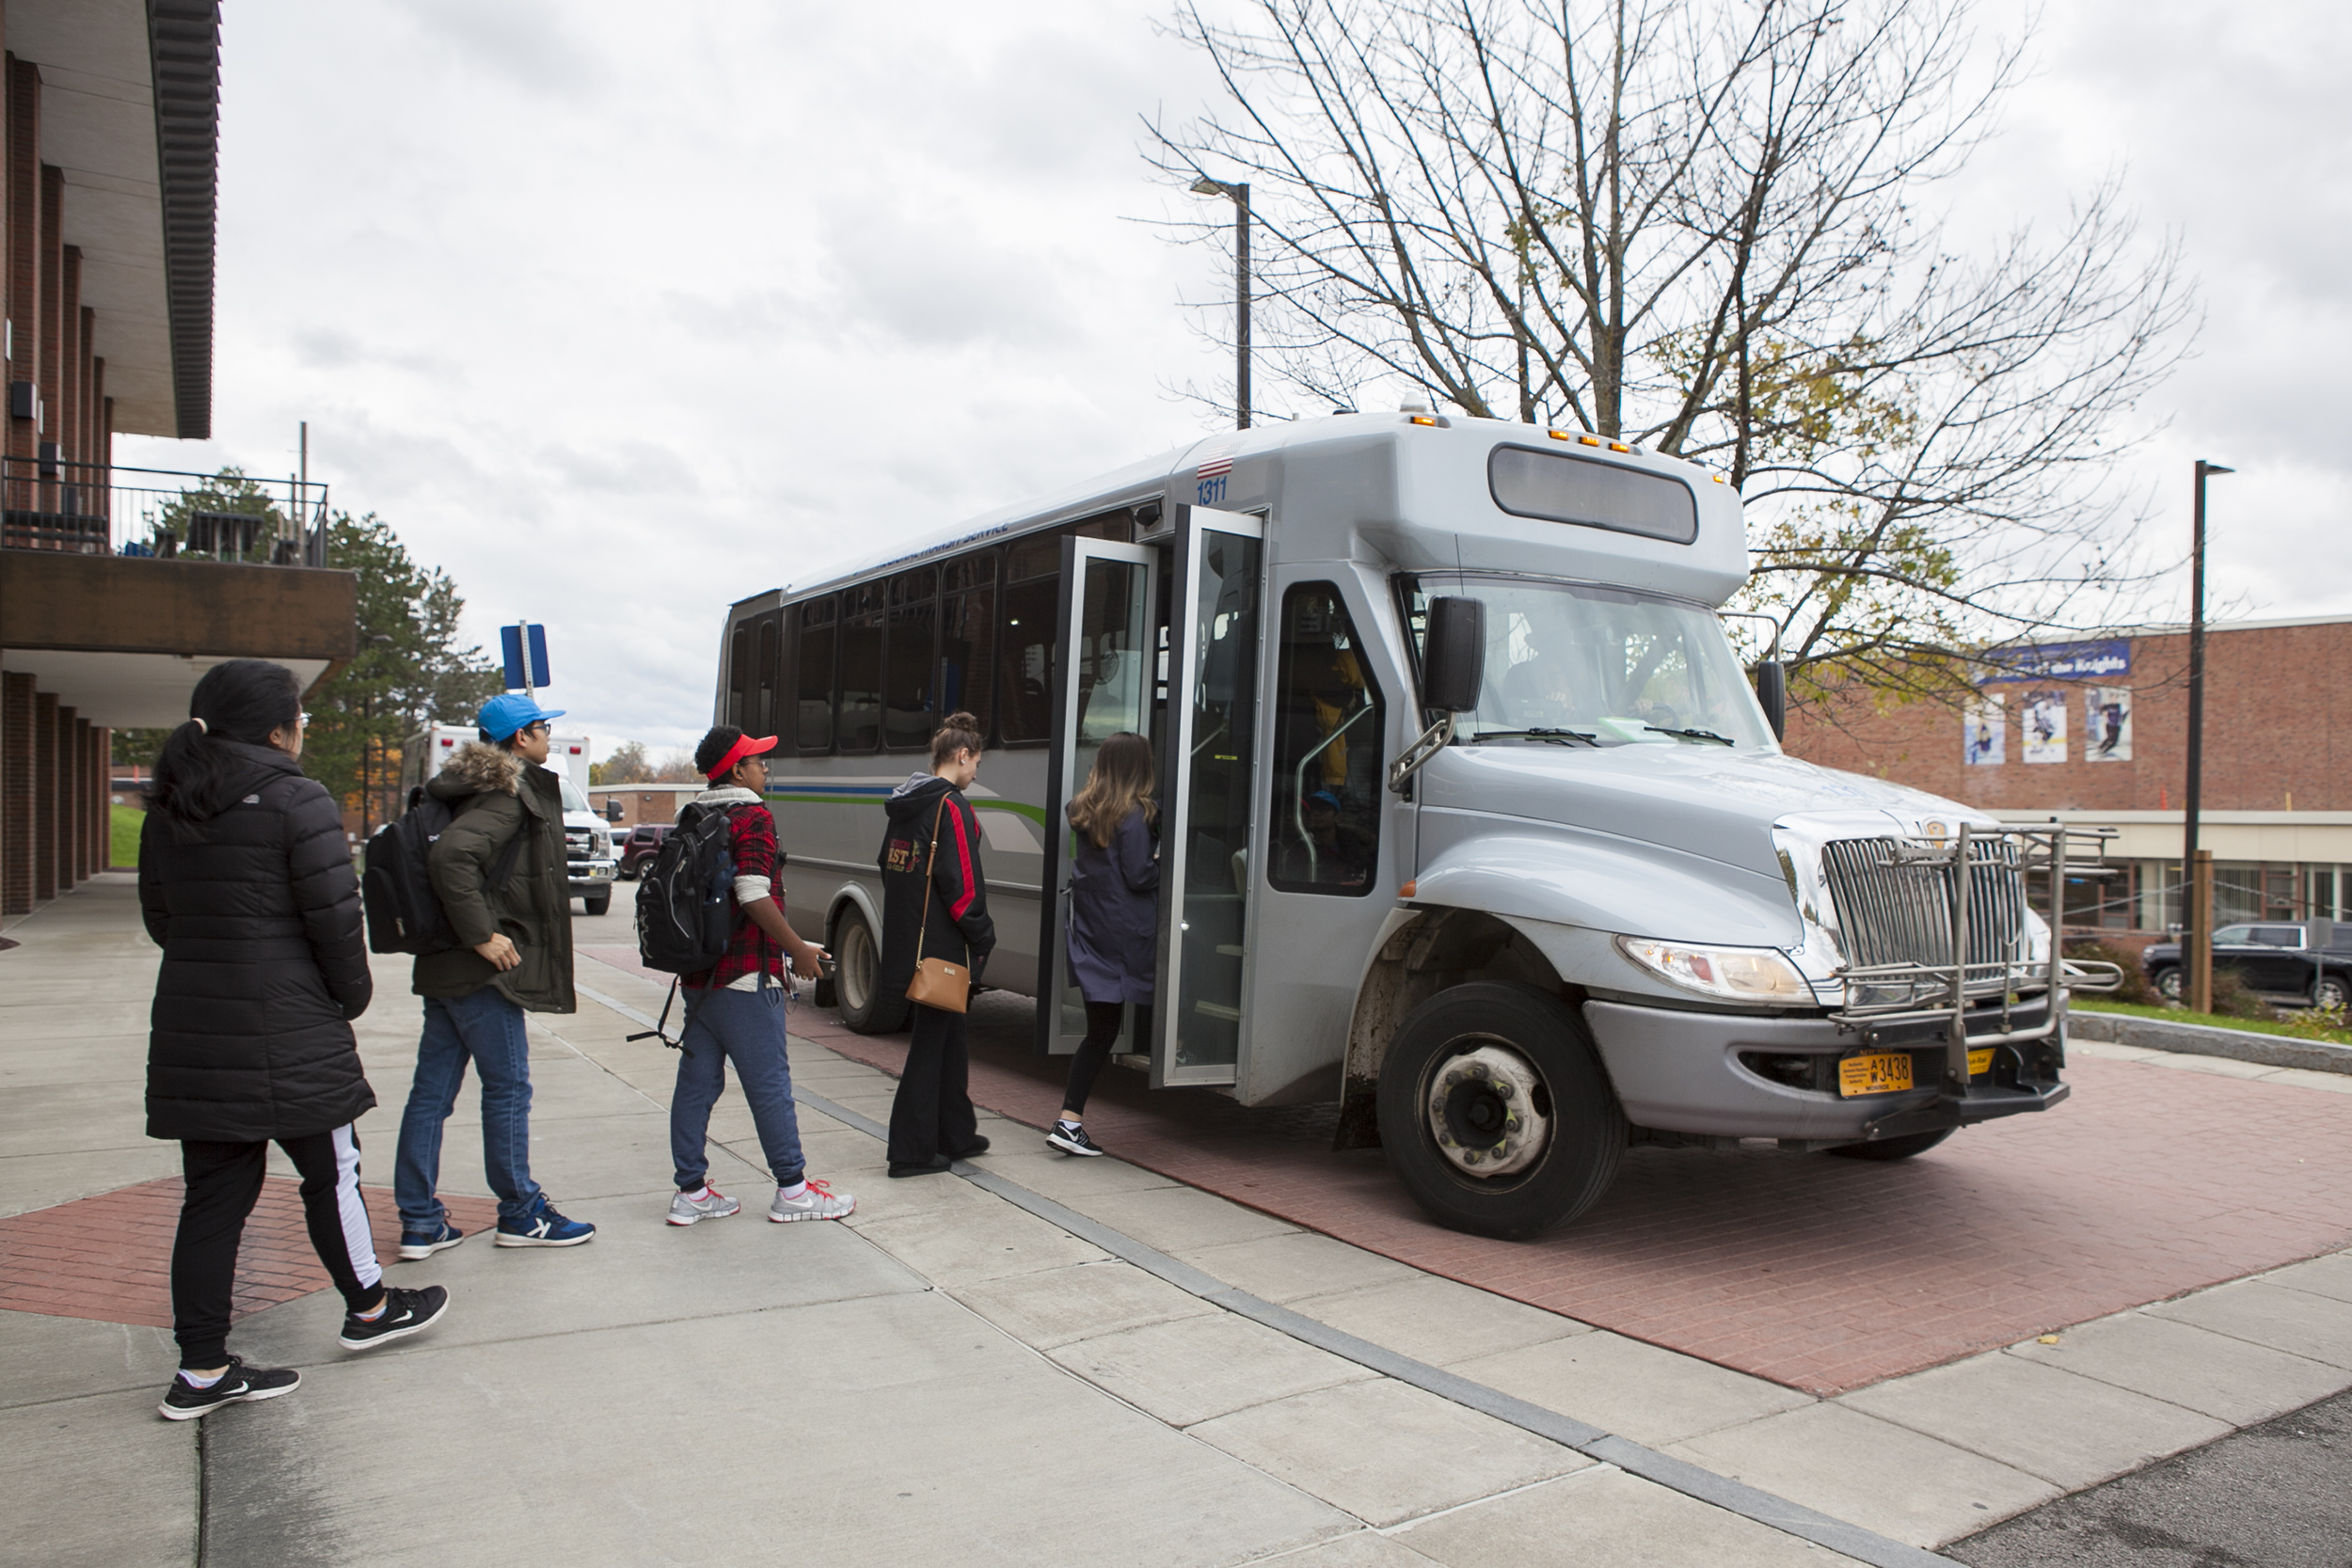 Students boarding a local bus (pictured above) that goes to various locations on and off-campus during the academic year, including Walmart and Wegmans. Communications major senior Udeshi Seneviratne, an international student from Vietnam, started a Geneseo Speaks petition calling for the college to offer transportation to students staying on campus during breaks (Udeshi Seneviratne/photo editor).